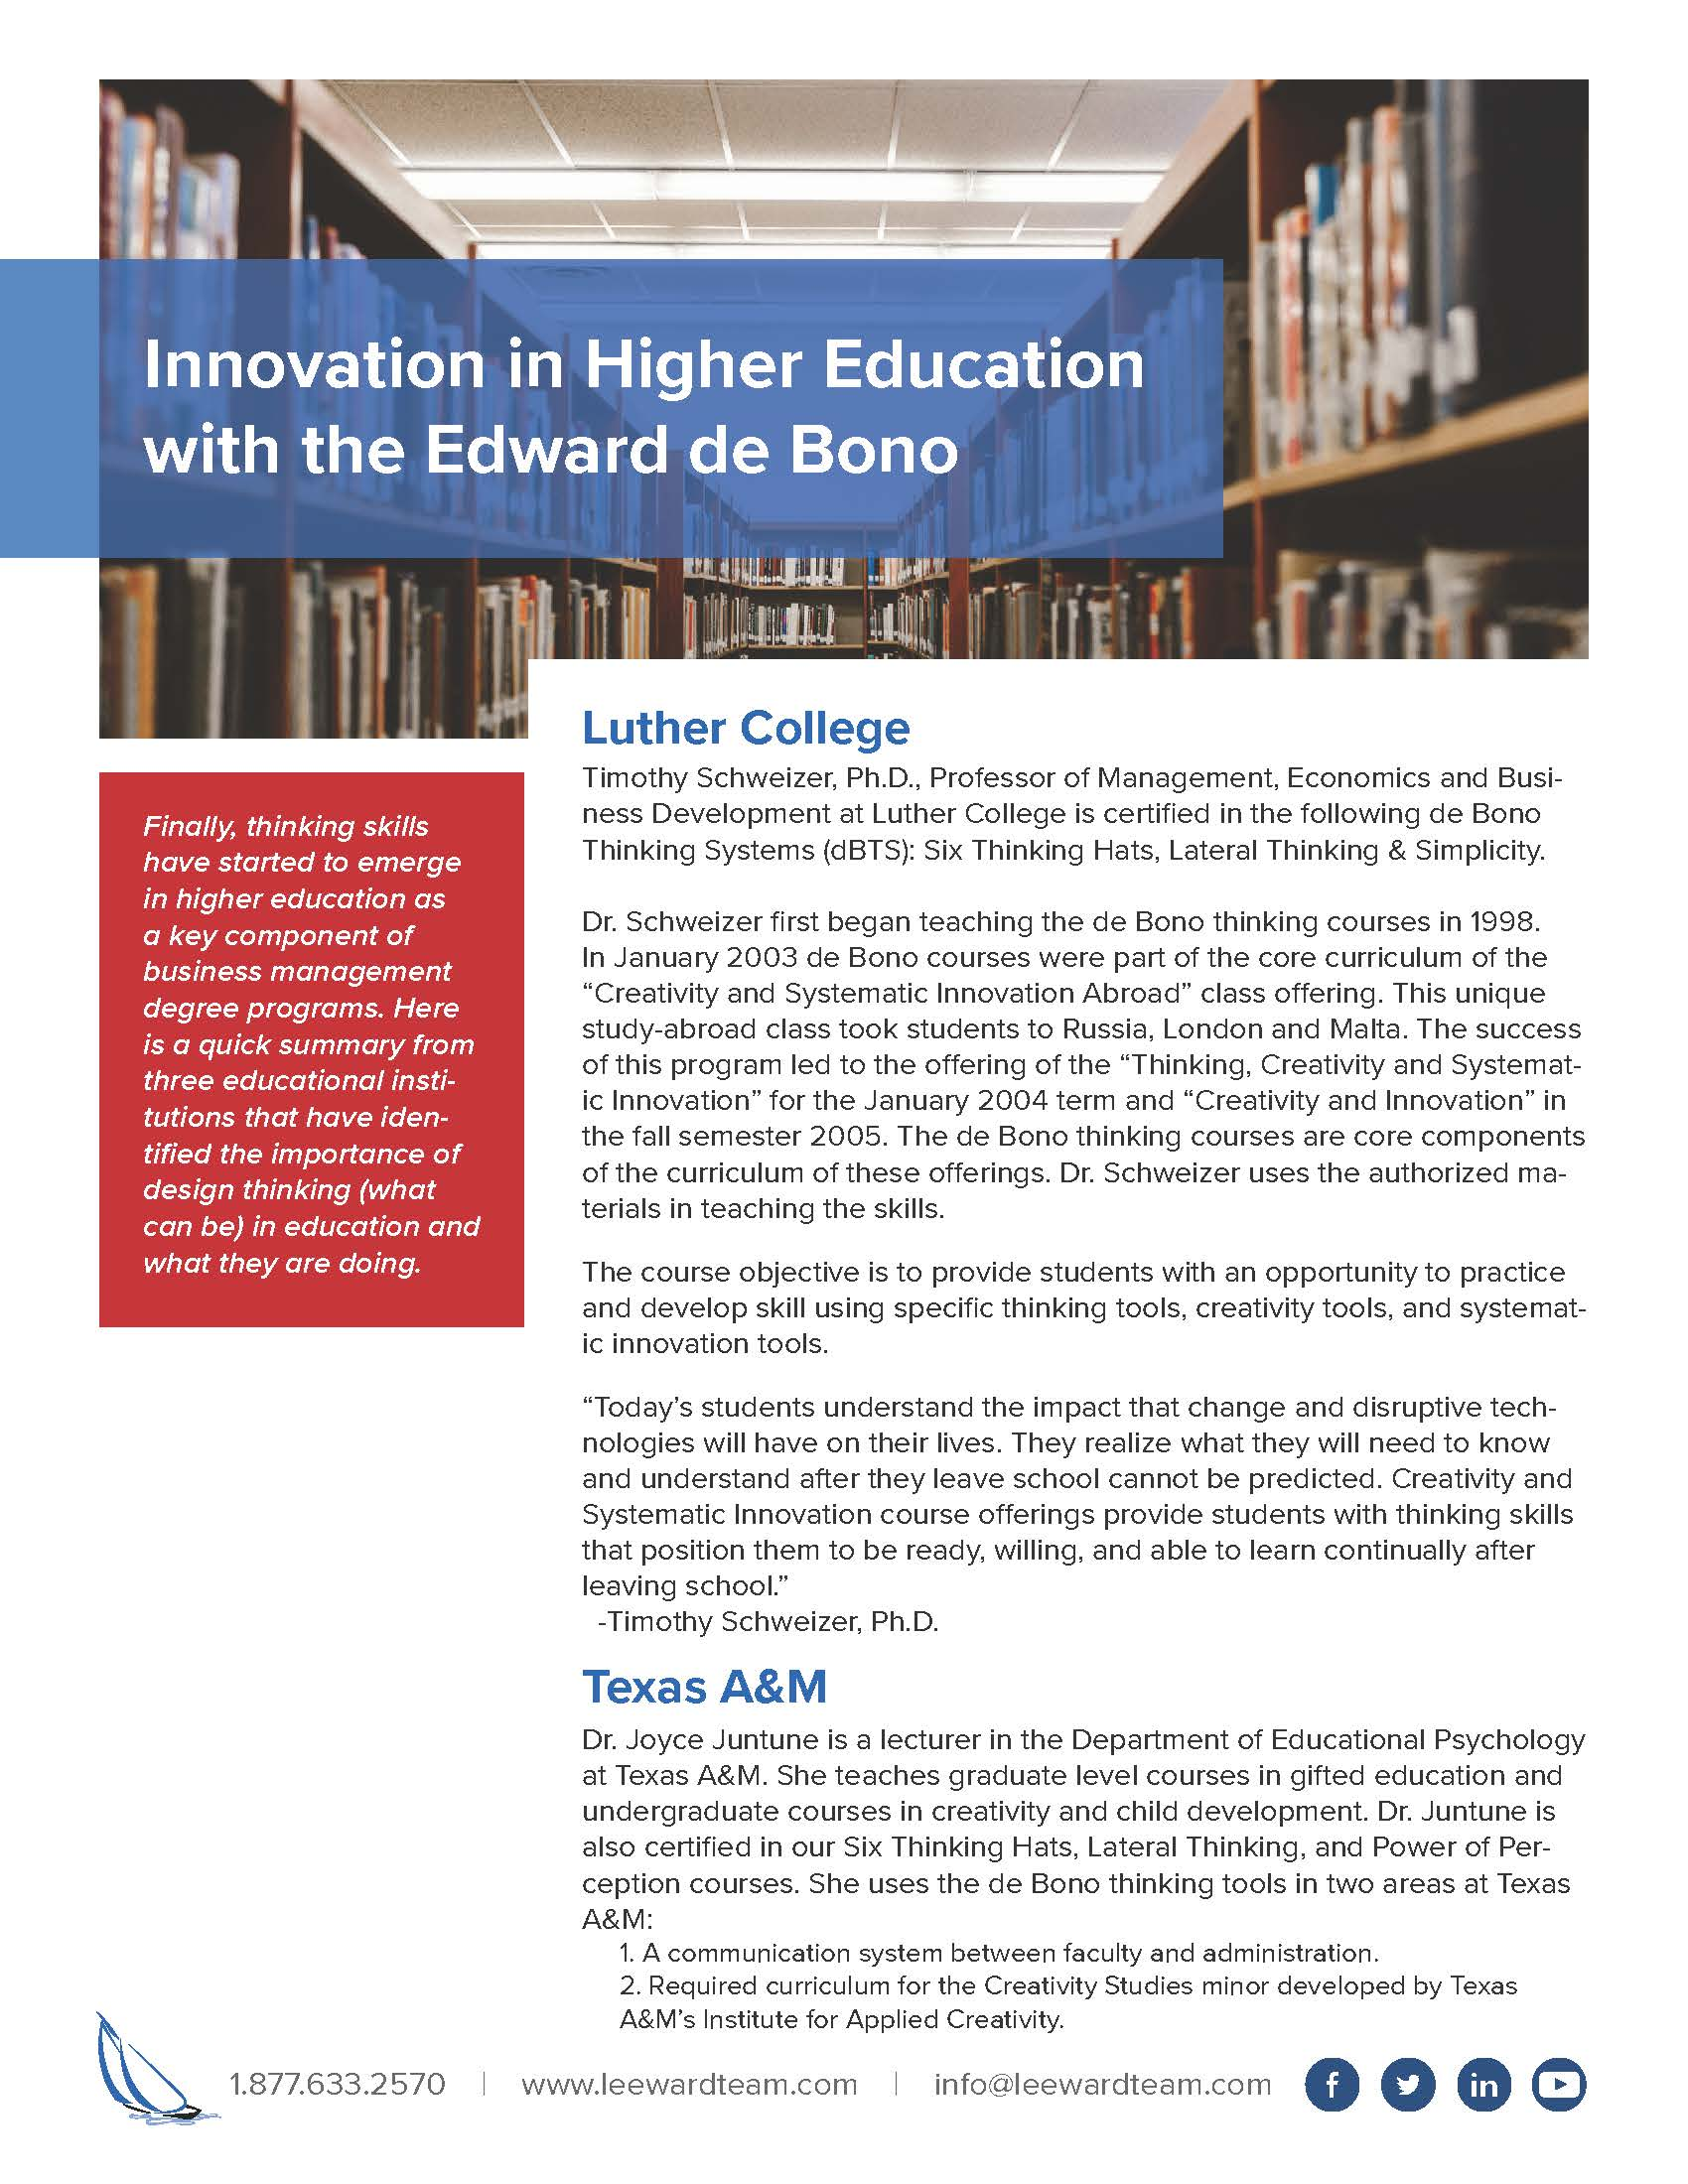 Case Study - Innovation in Higher Education